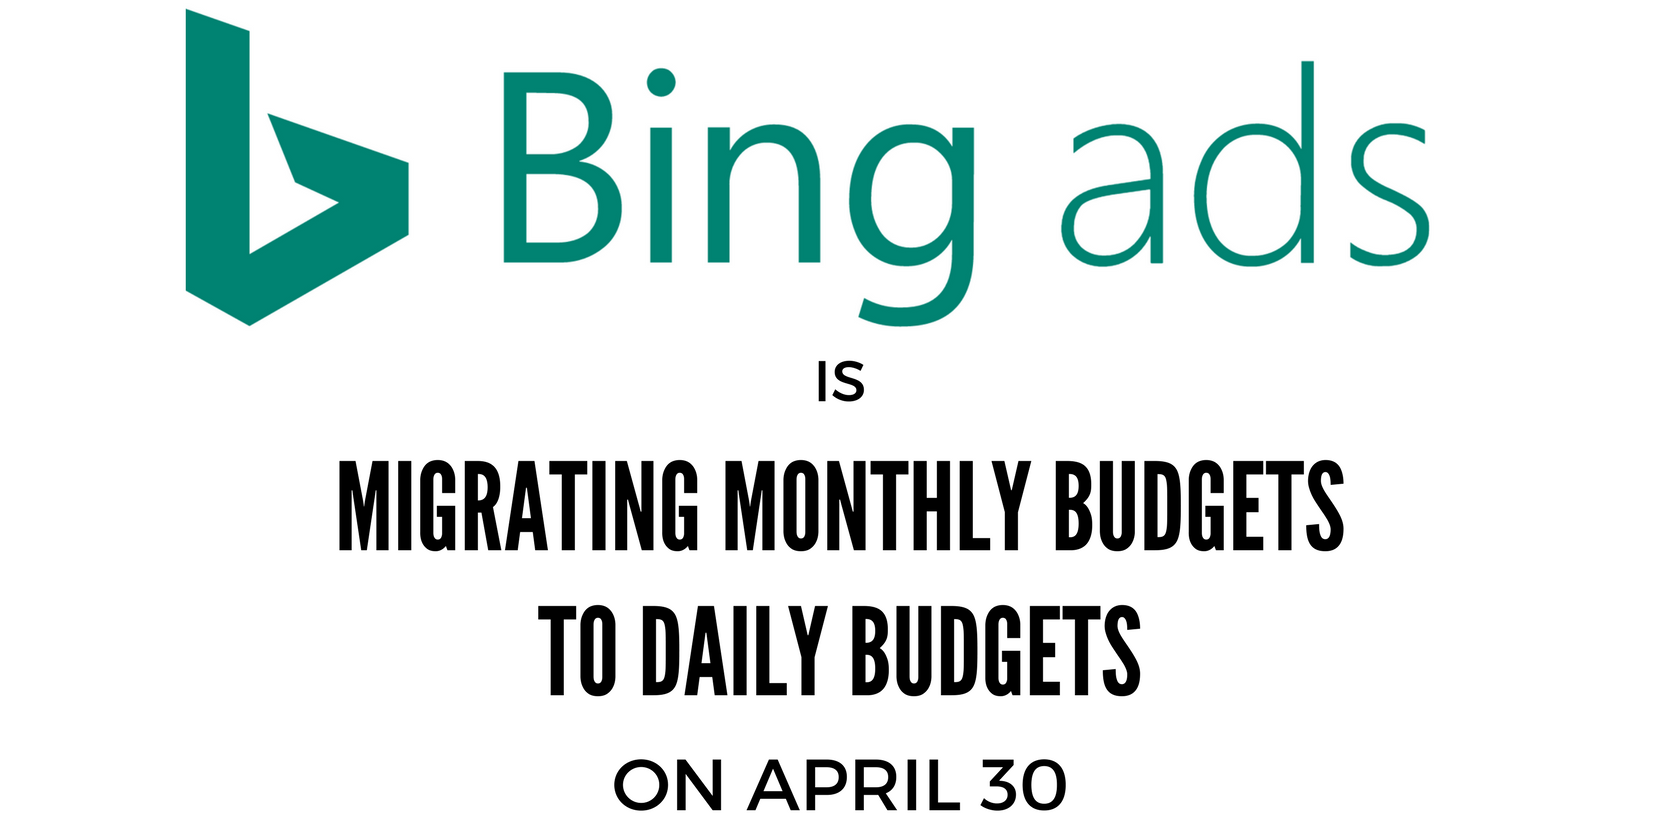 Bing Ads Will Stop Supporting Monthly Budgets as of April 30 by @MattGSouthern